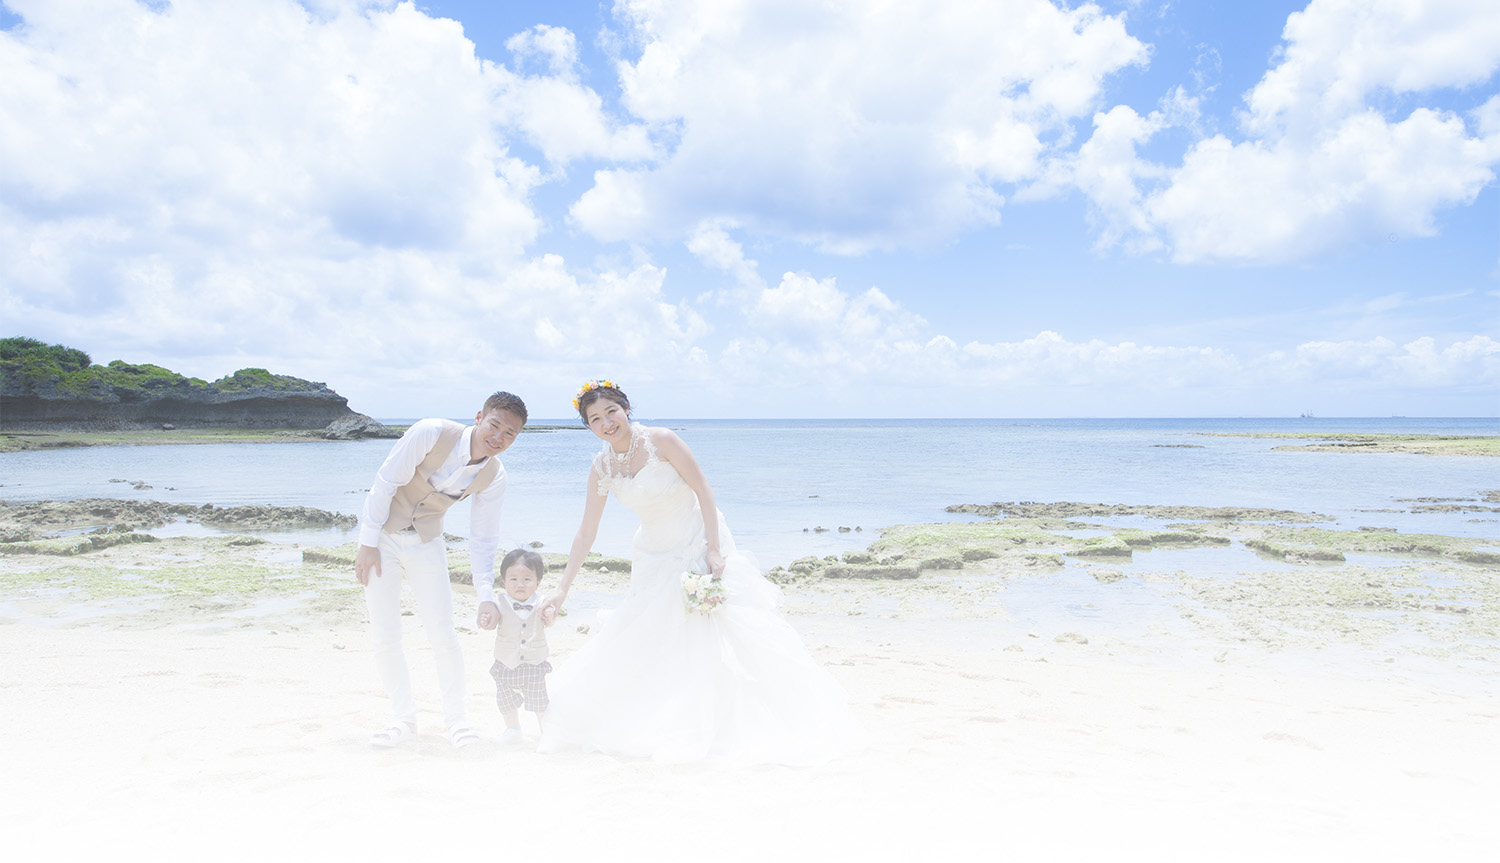 okinawa family photo